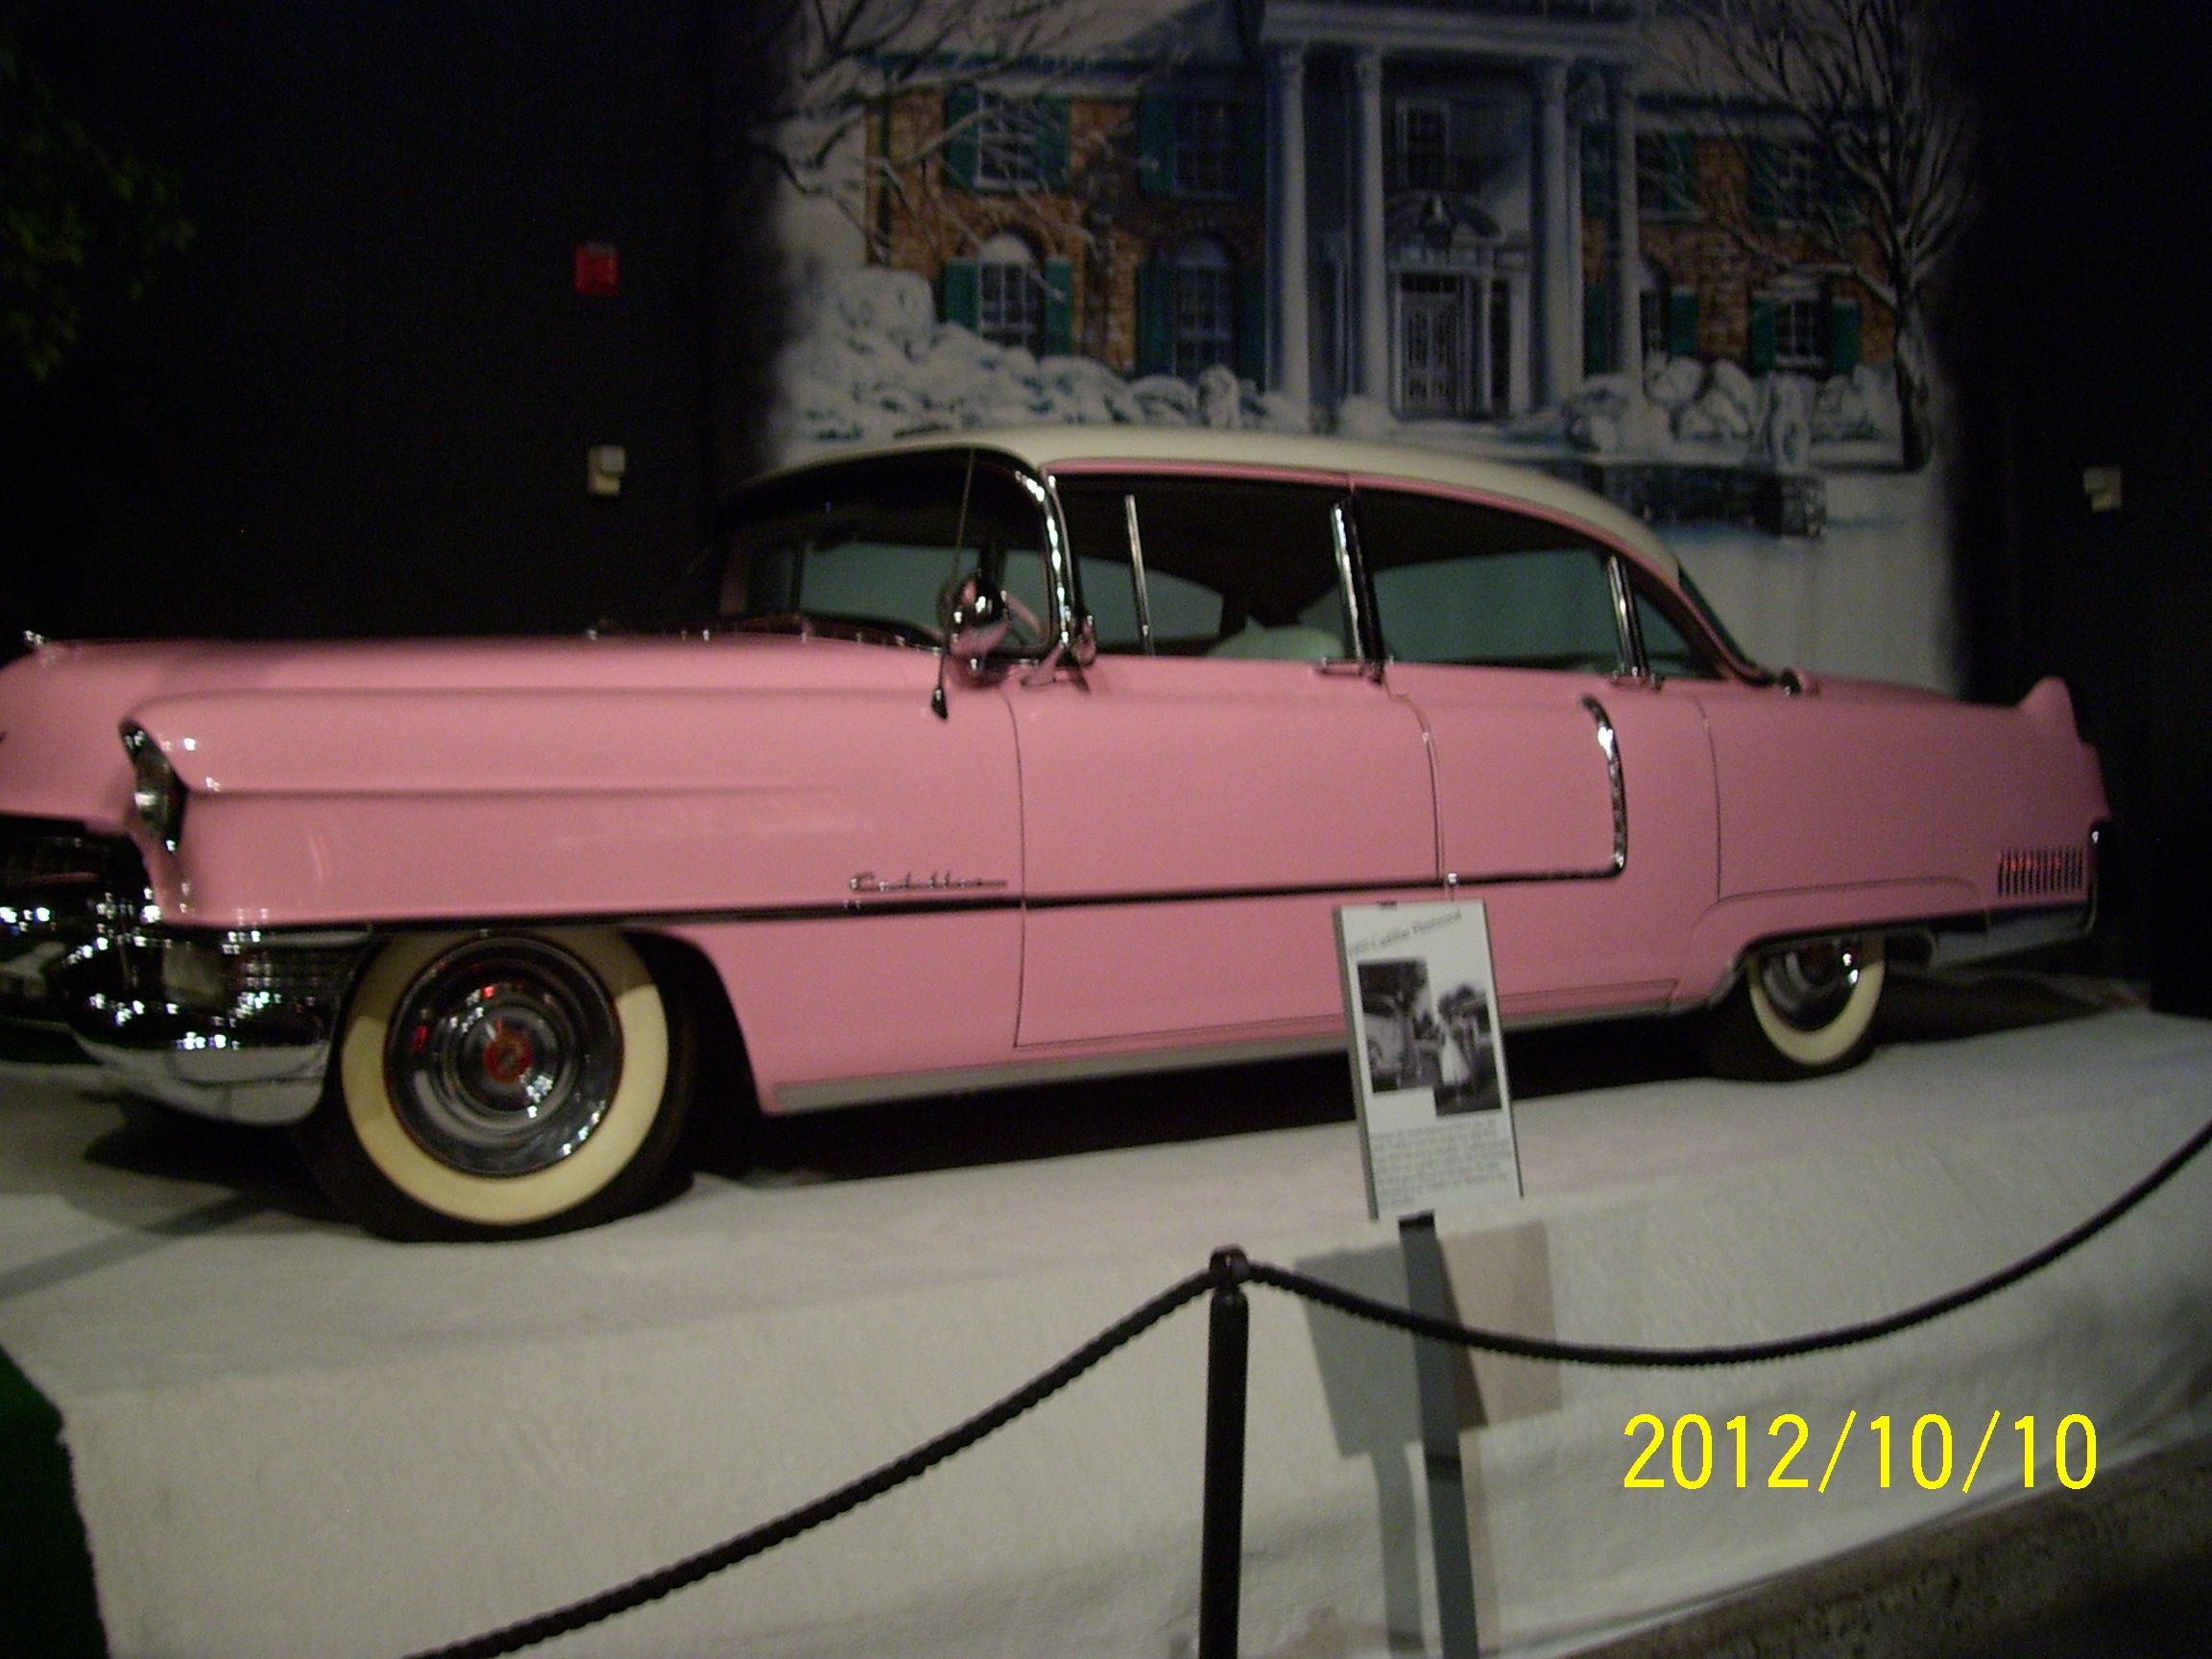 Saw Elvis' cars.  This is the famous pink Cadillac Elvis bought for his Momma.  Still looks like new.